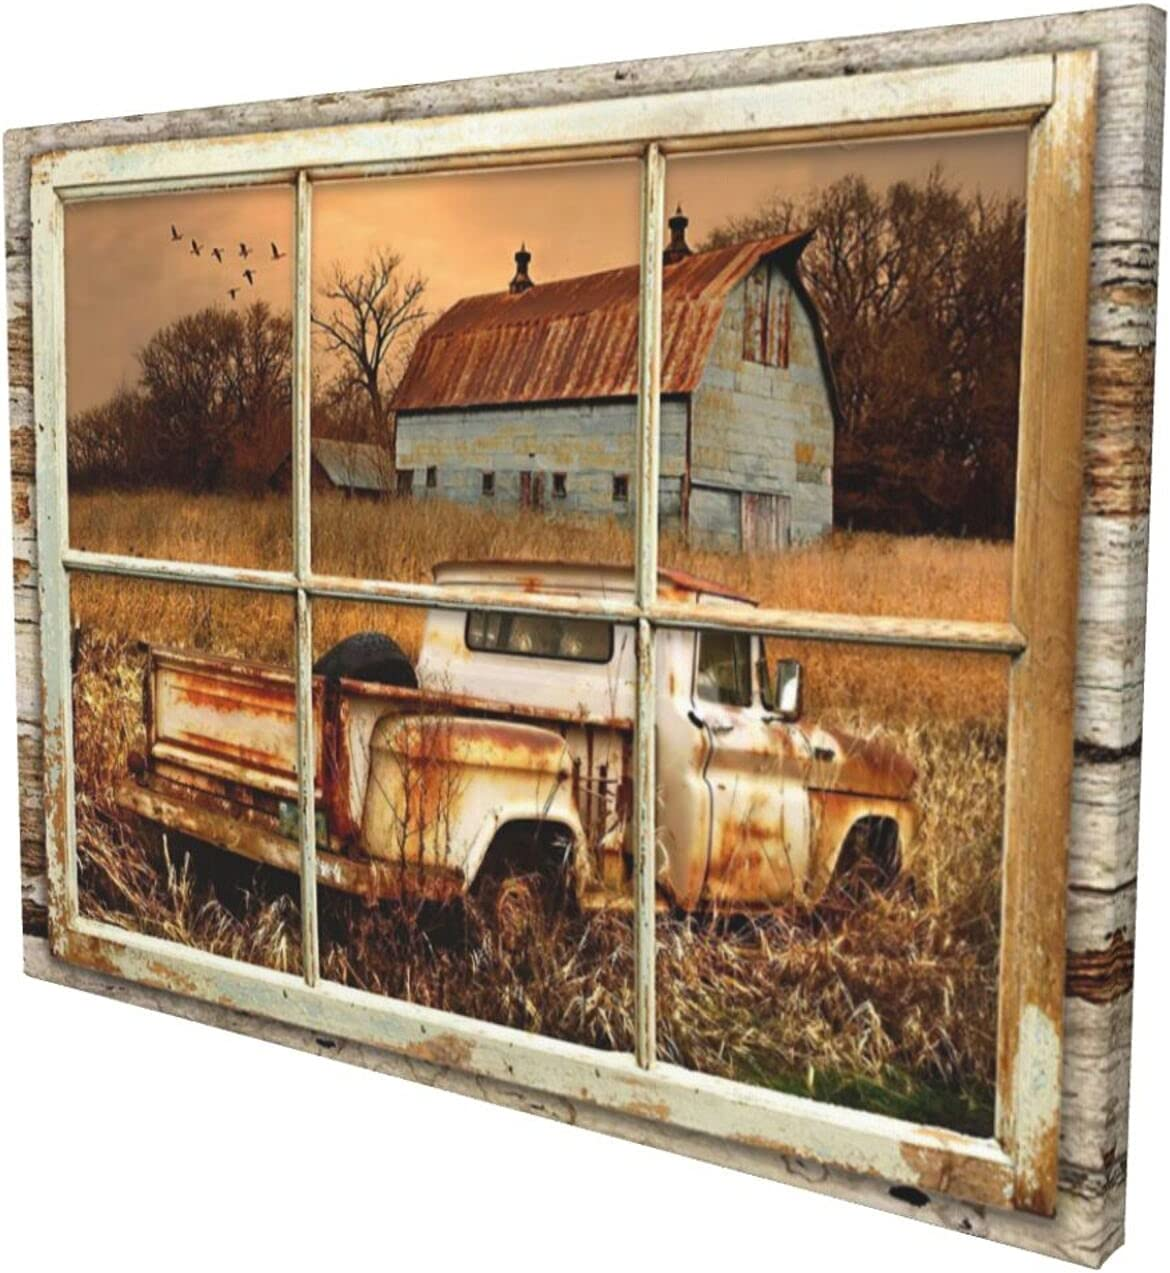 Drawpro Rustic Old Barn Wall Art Beautiful Barn And Rustic Truck At Sunset Through Wooden Window Frame Wall Art For Farmhouse Decor Modern House Wall Art Canvas Art 12x16 Inch